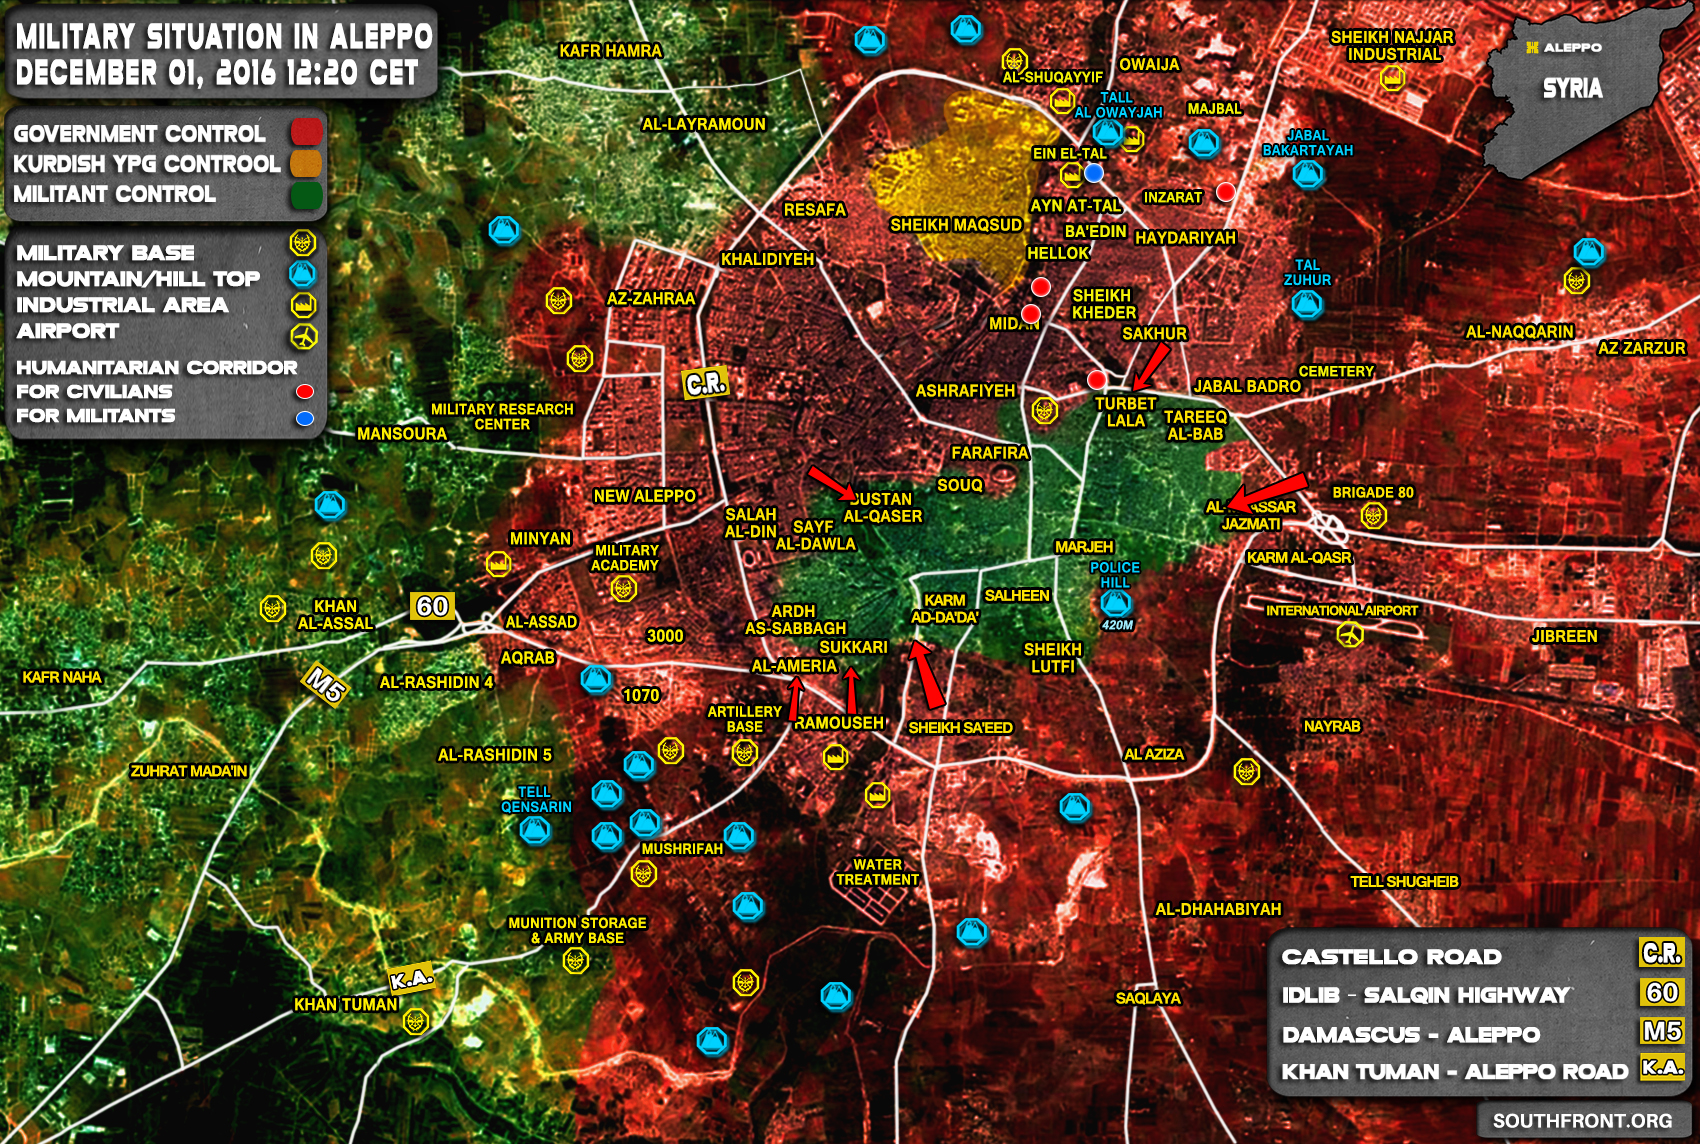 Overview of Military Situation in Aleppo City on December 1, 2016